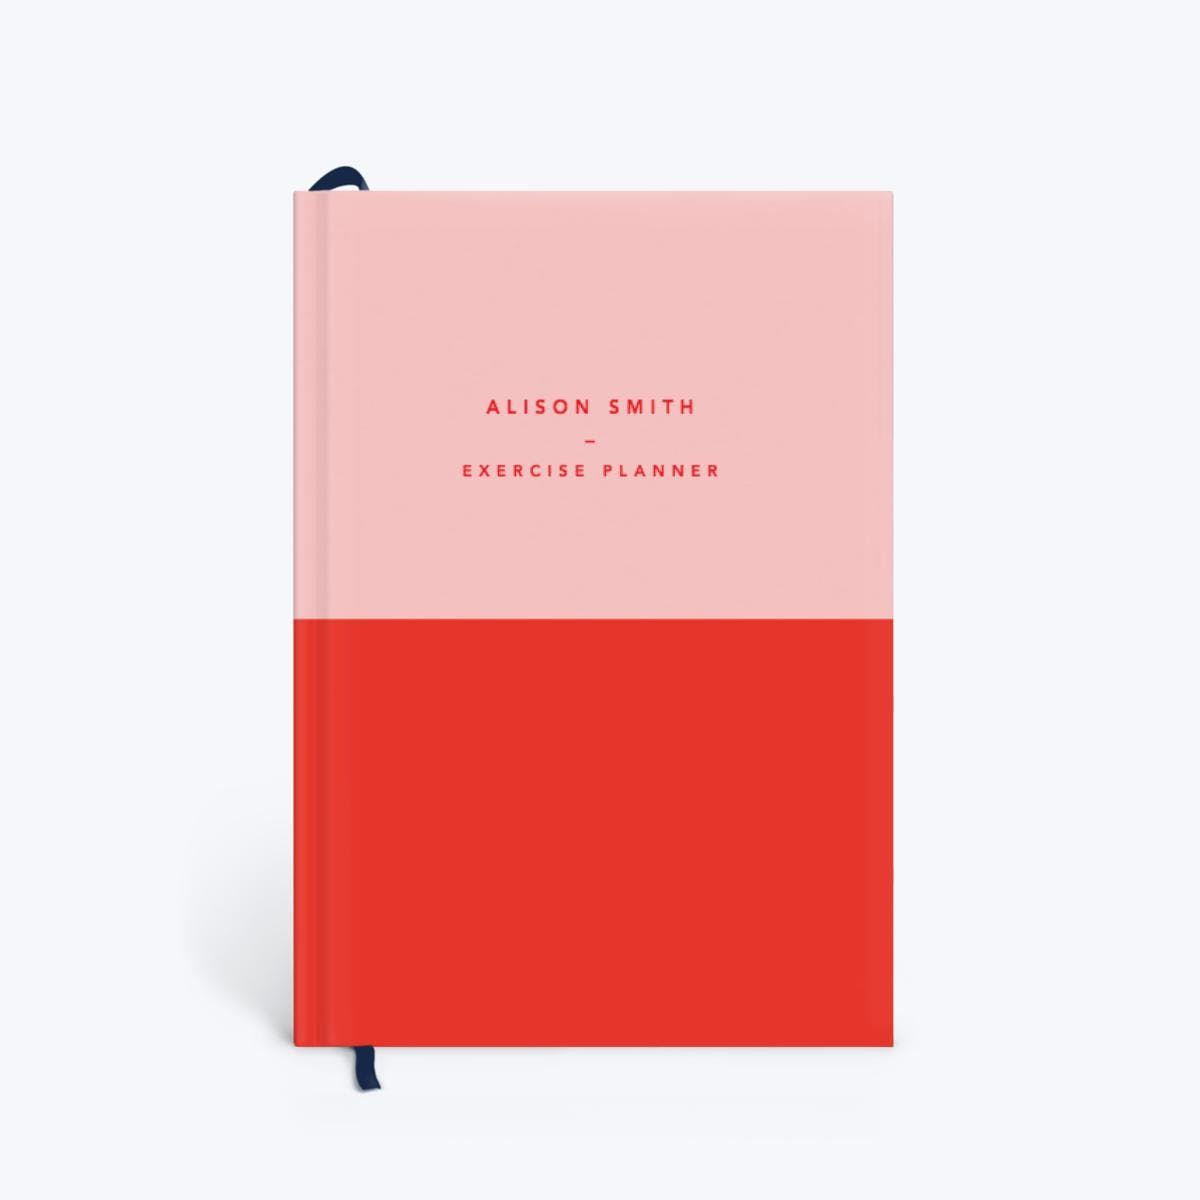 https—www.papier.com-product_image-63581-36-colourblock-pink-red-14955_front_1548793160.png